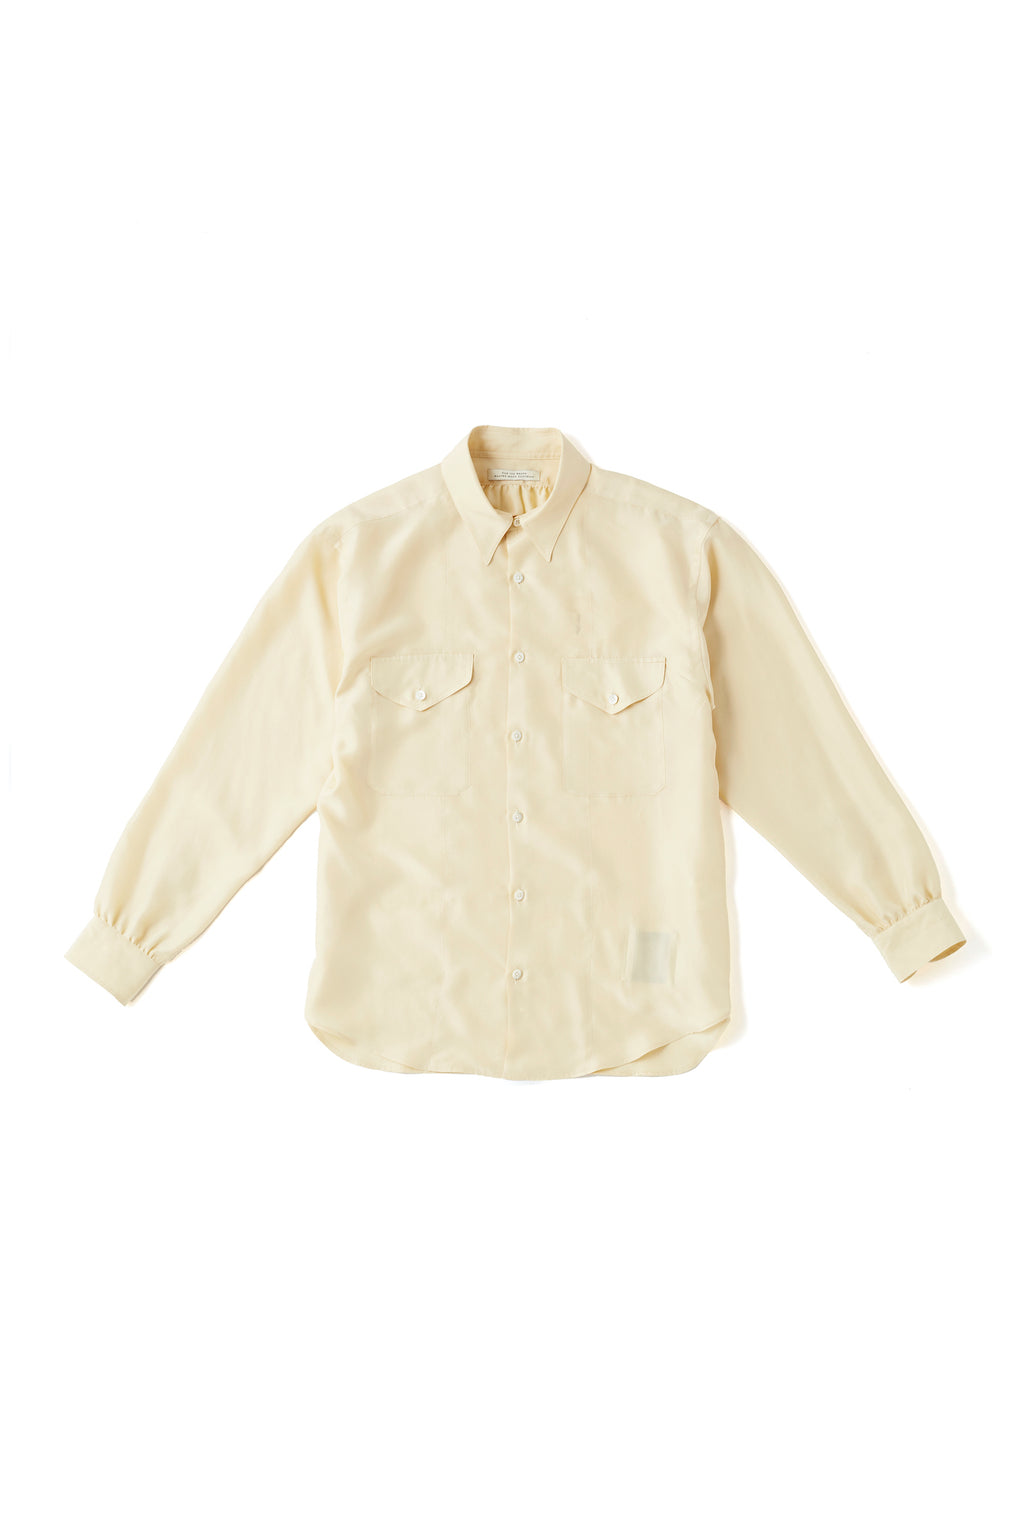 TOP NOTCH UNIFORM SHIRTS (long sleeve) - 201OJ-SH01